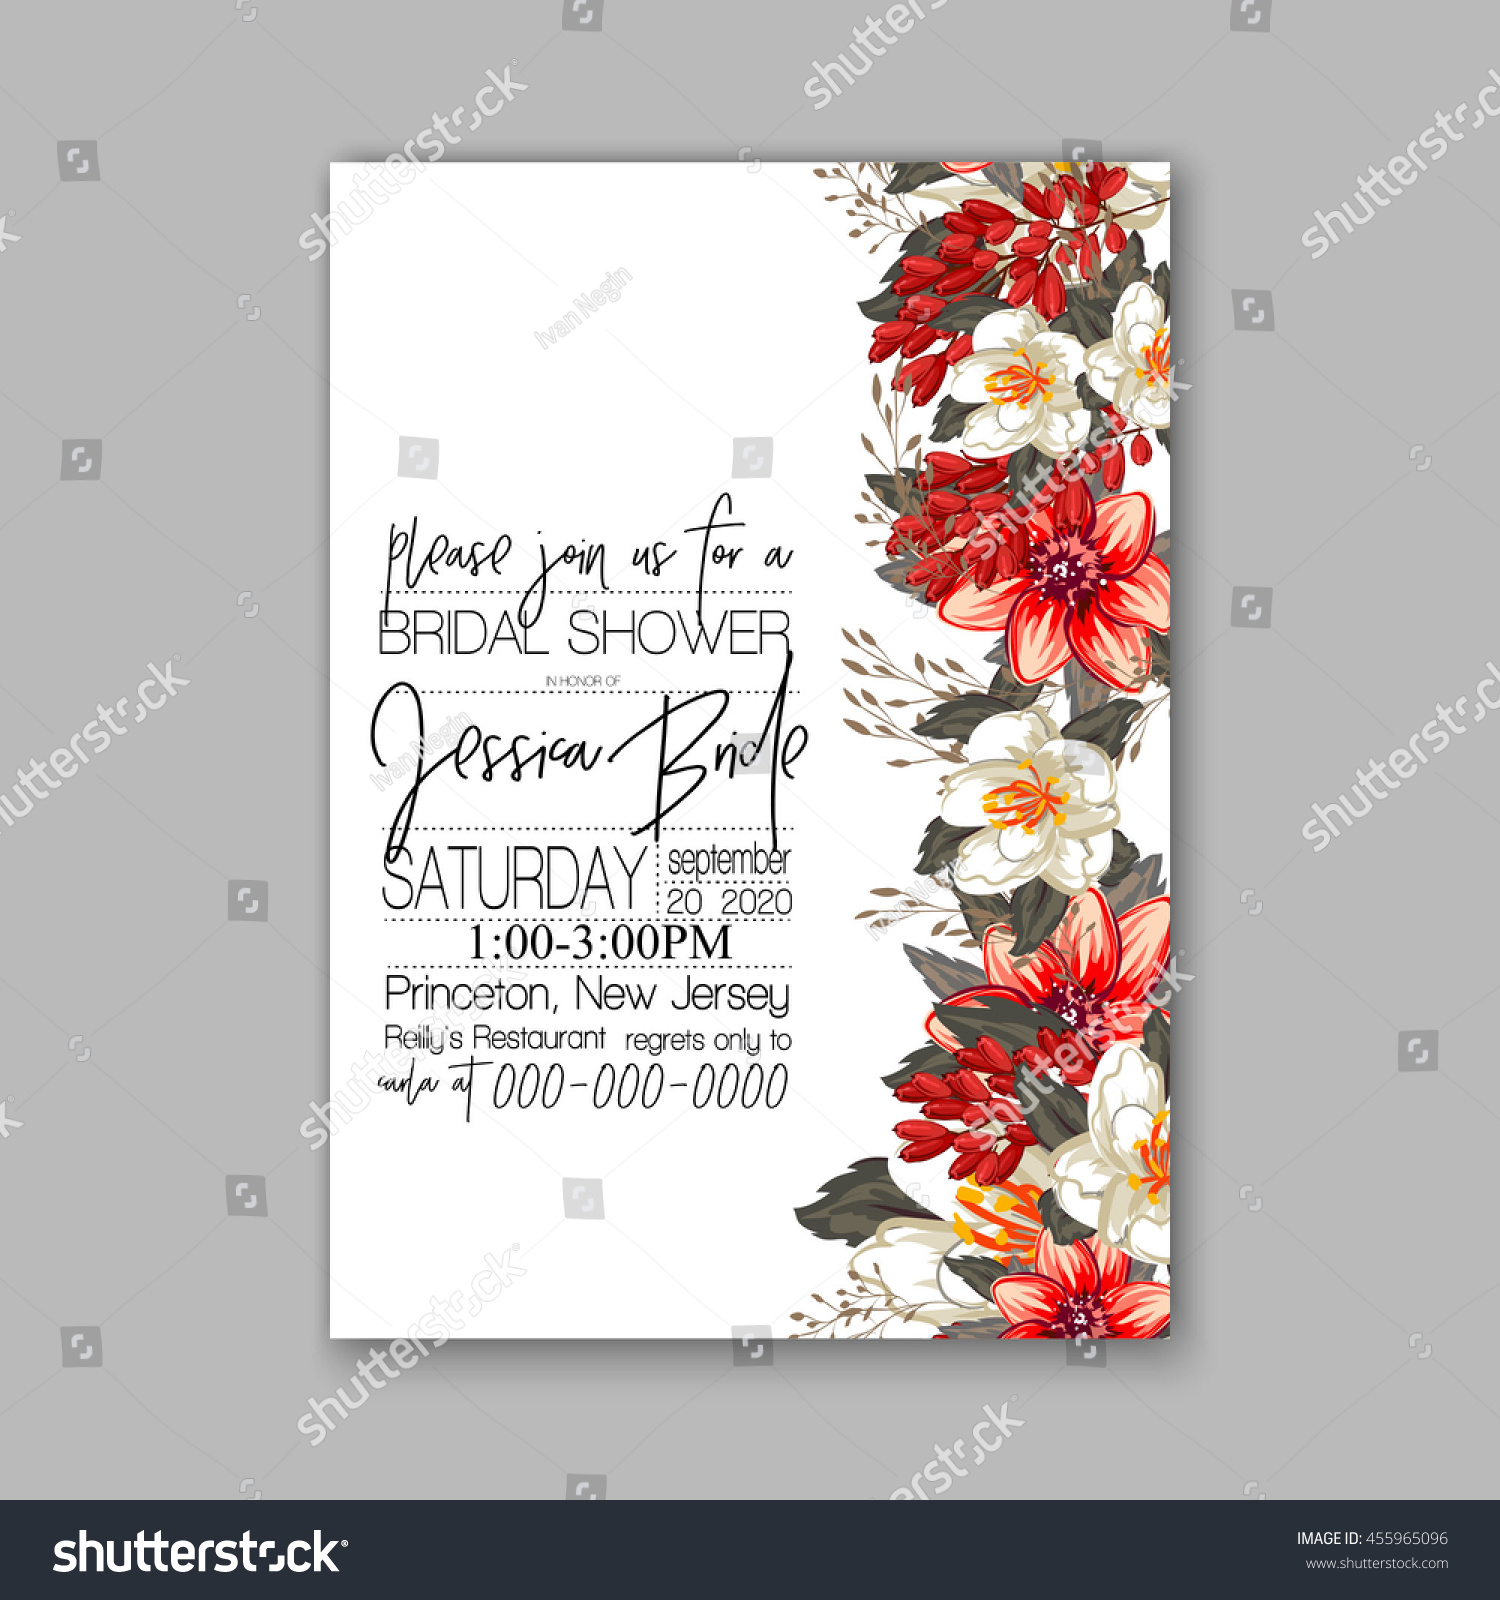 Wedding Invitation Abstract Floral Background Stock Vector 455965096 ...